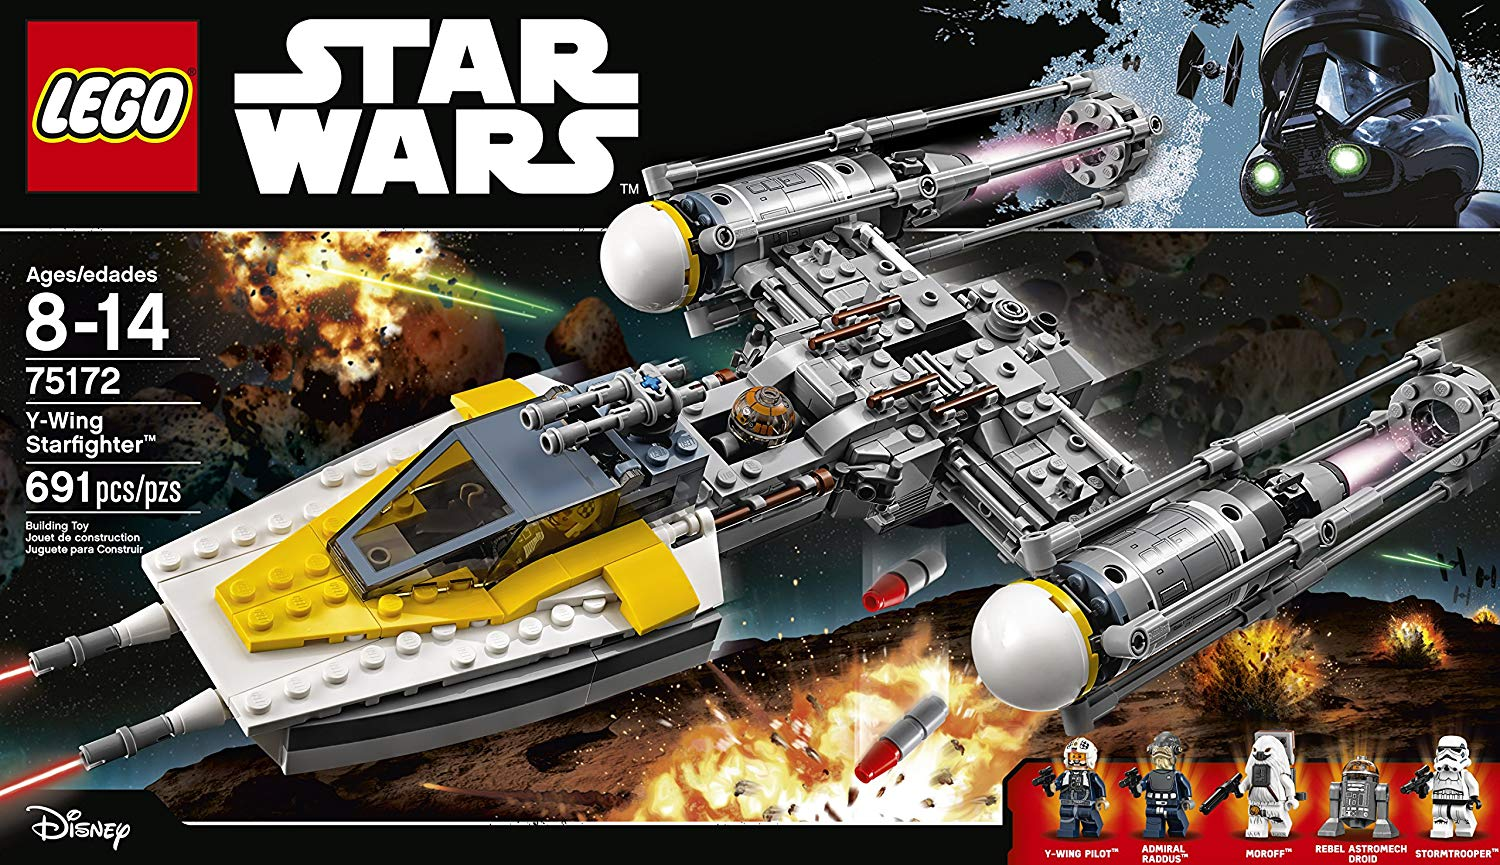 LEGO Star Wars 75172 Y-Wing Starfighter set